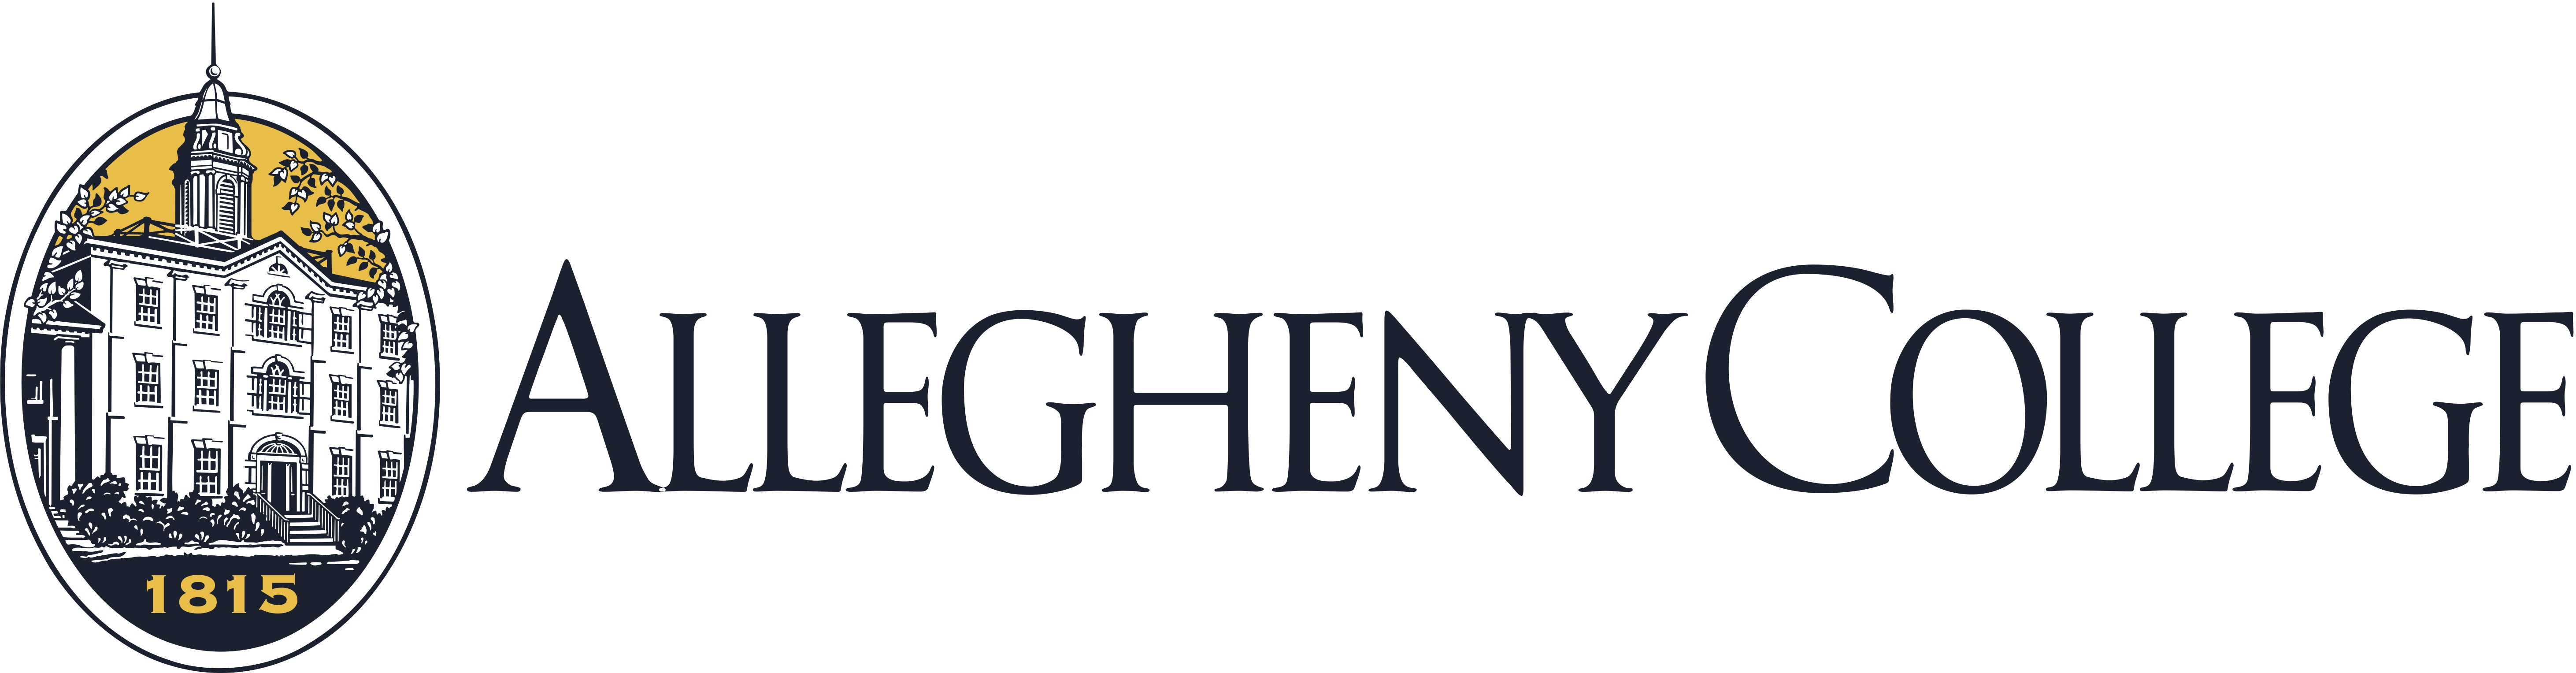 The Interdisciplinary Program In Global Health Studies At Allegheny College Is Accepting Applications For A Tenure Track Position Rank Open Beginning